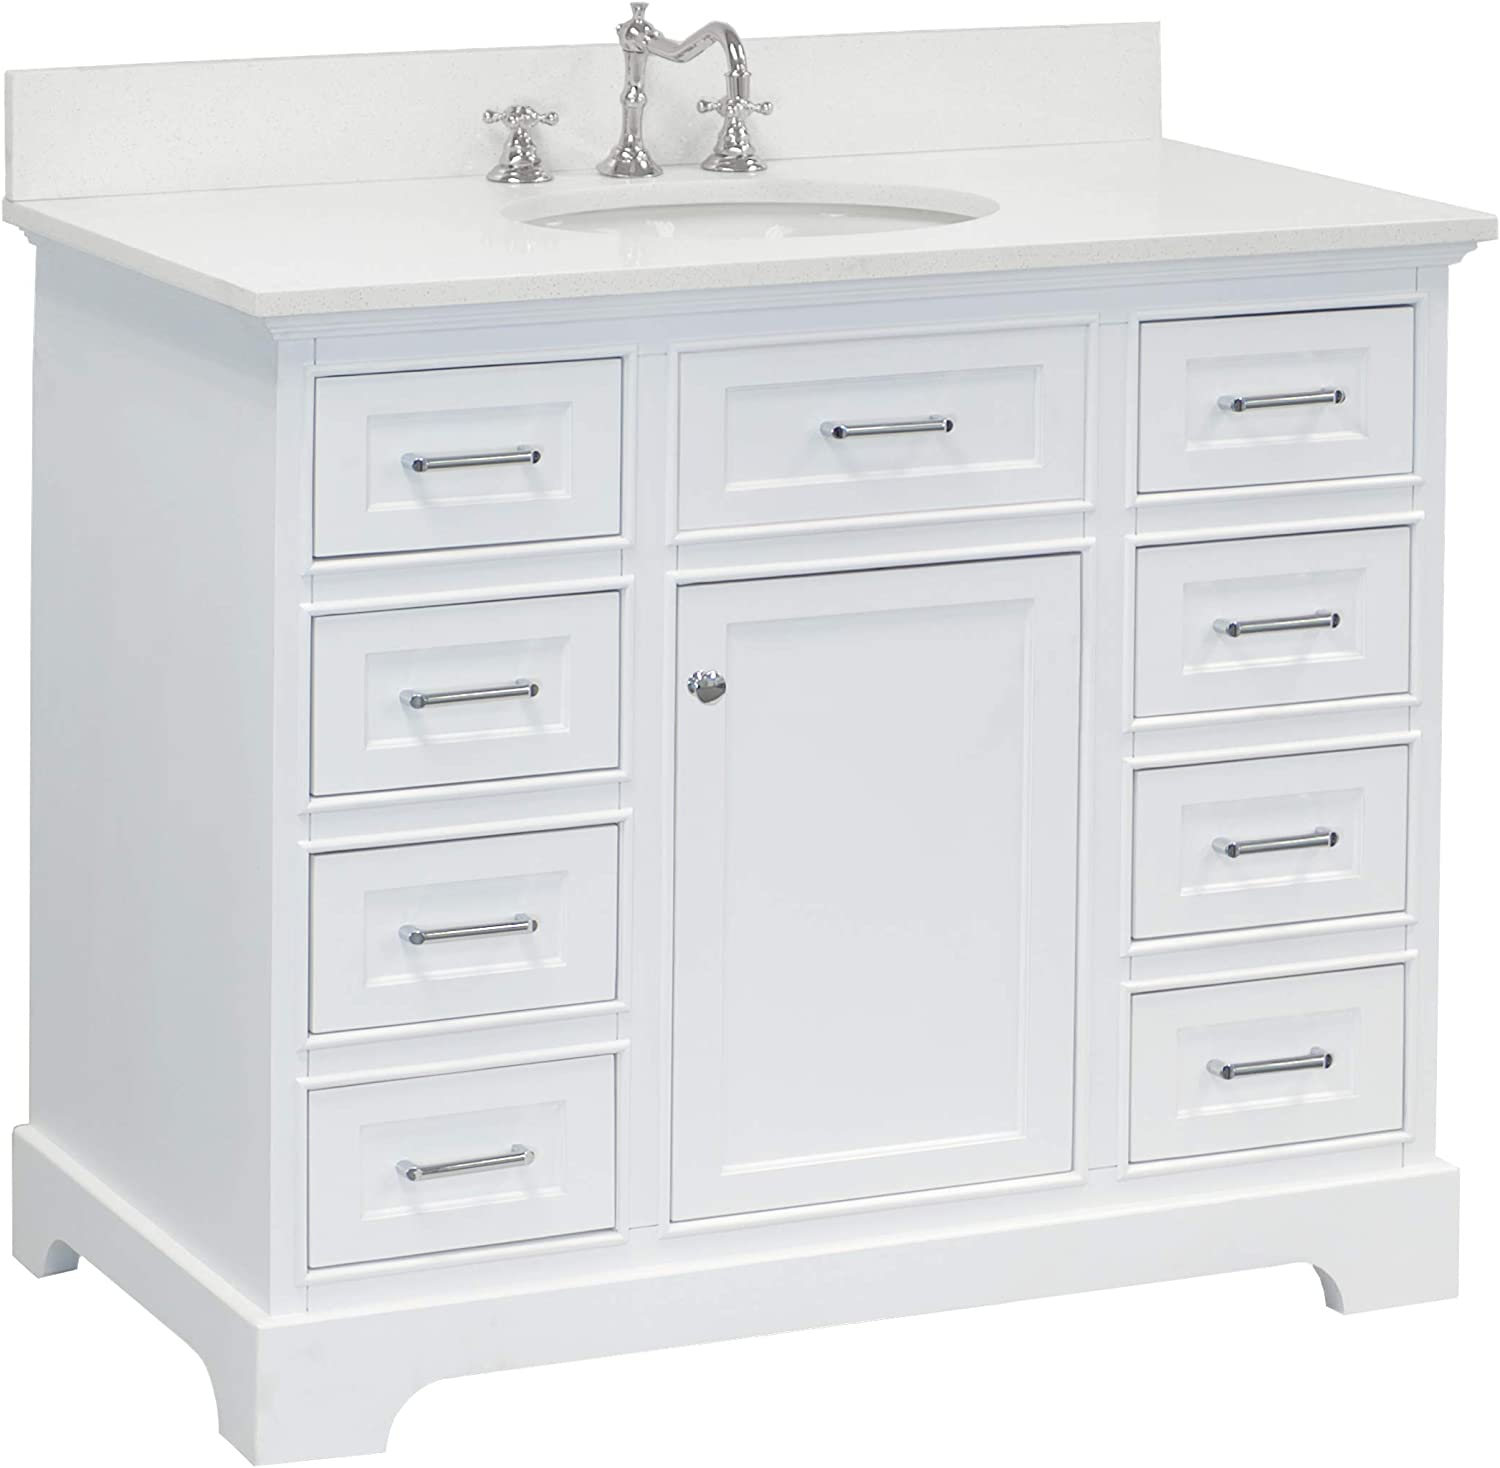 Amazon Com Aria 42 Inch Bathroom Vanity Quartz White Includes White Cabinet With Stunning Quartz Countertop And White Ceramic Sink Home Improvement